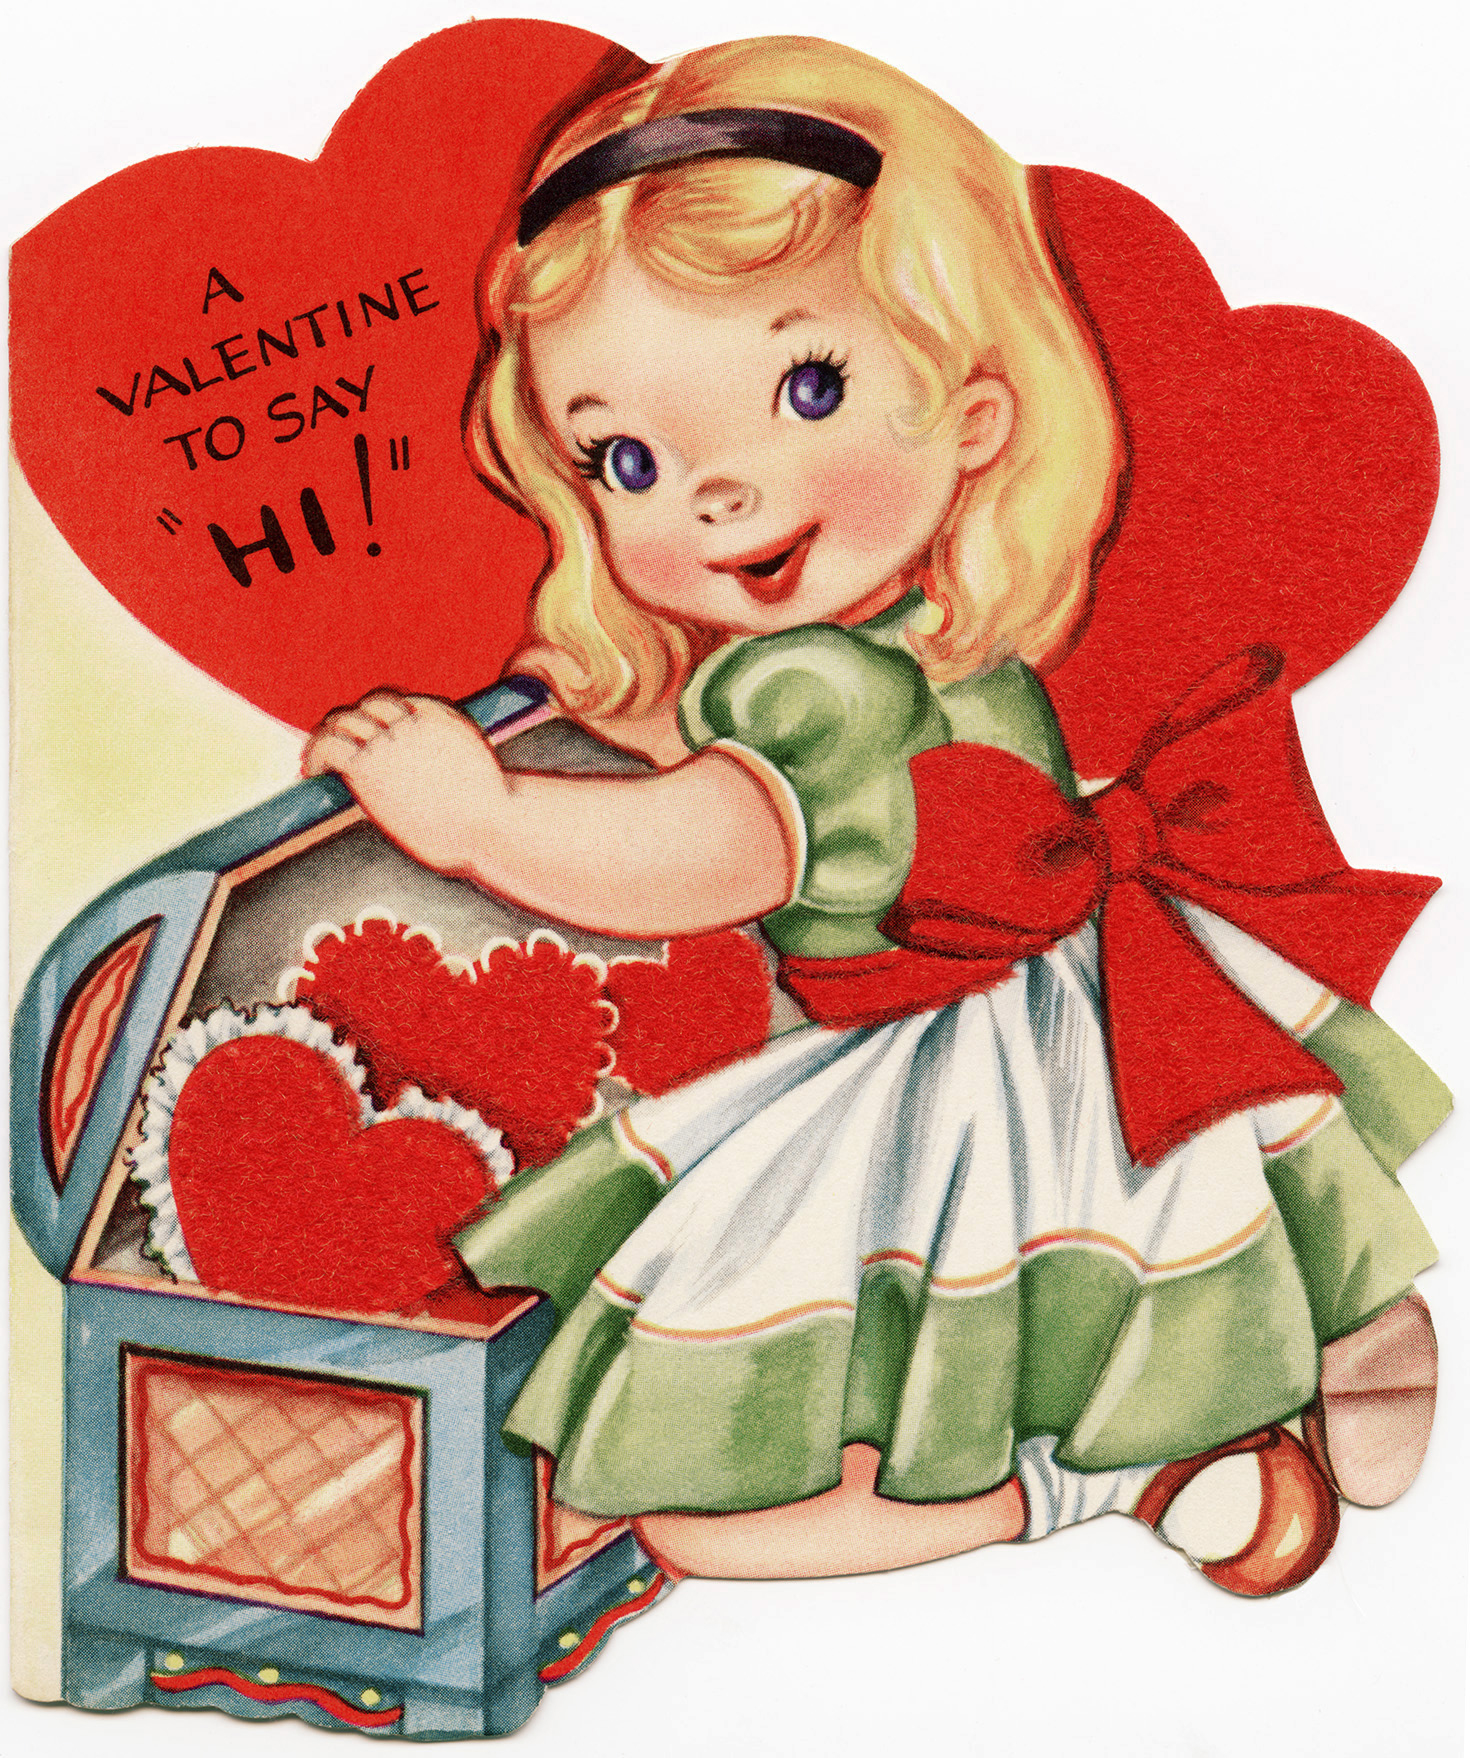 Free Vintage Image ~ A Valentine To Say Hi! - Old Design Shop Blog - Free Printable Vintage Valentine Pictures